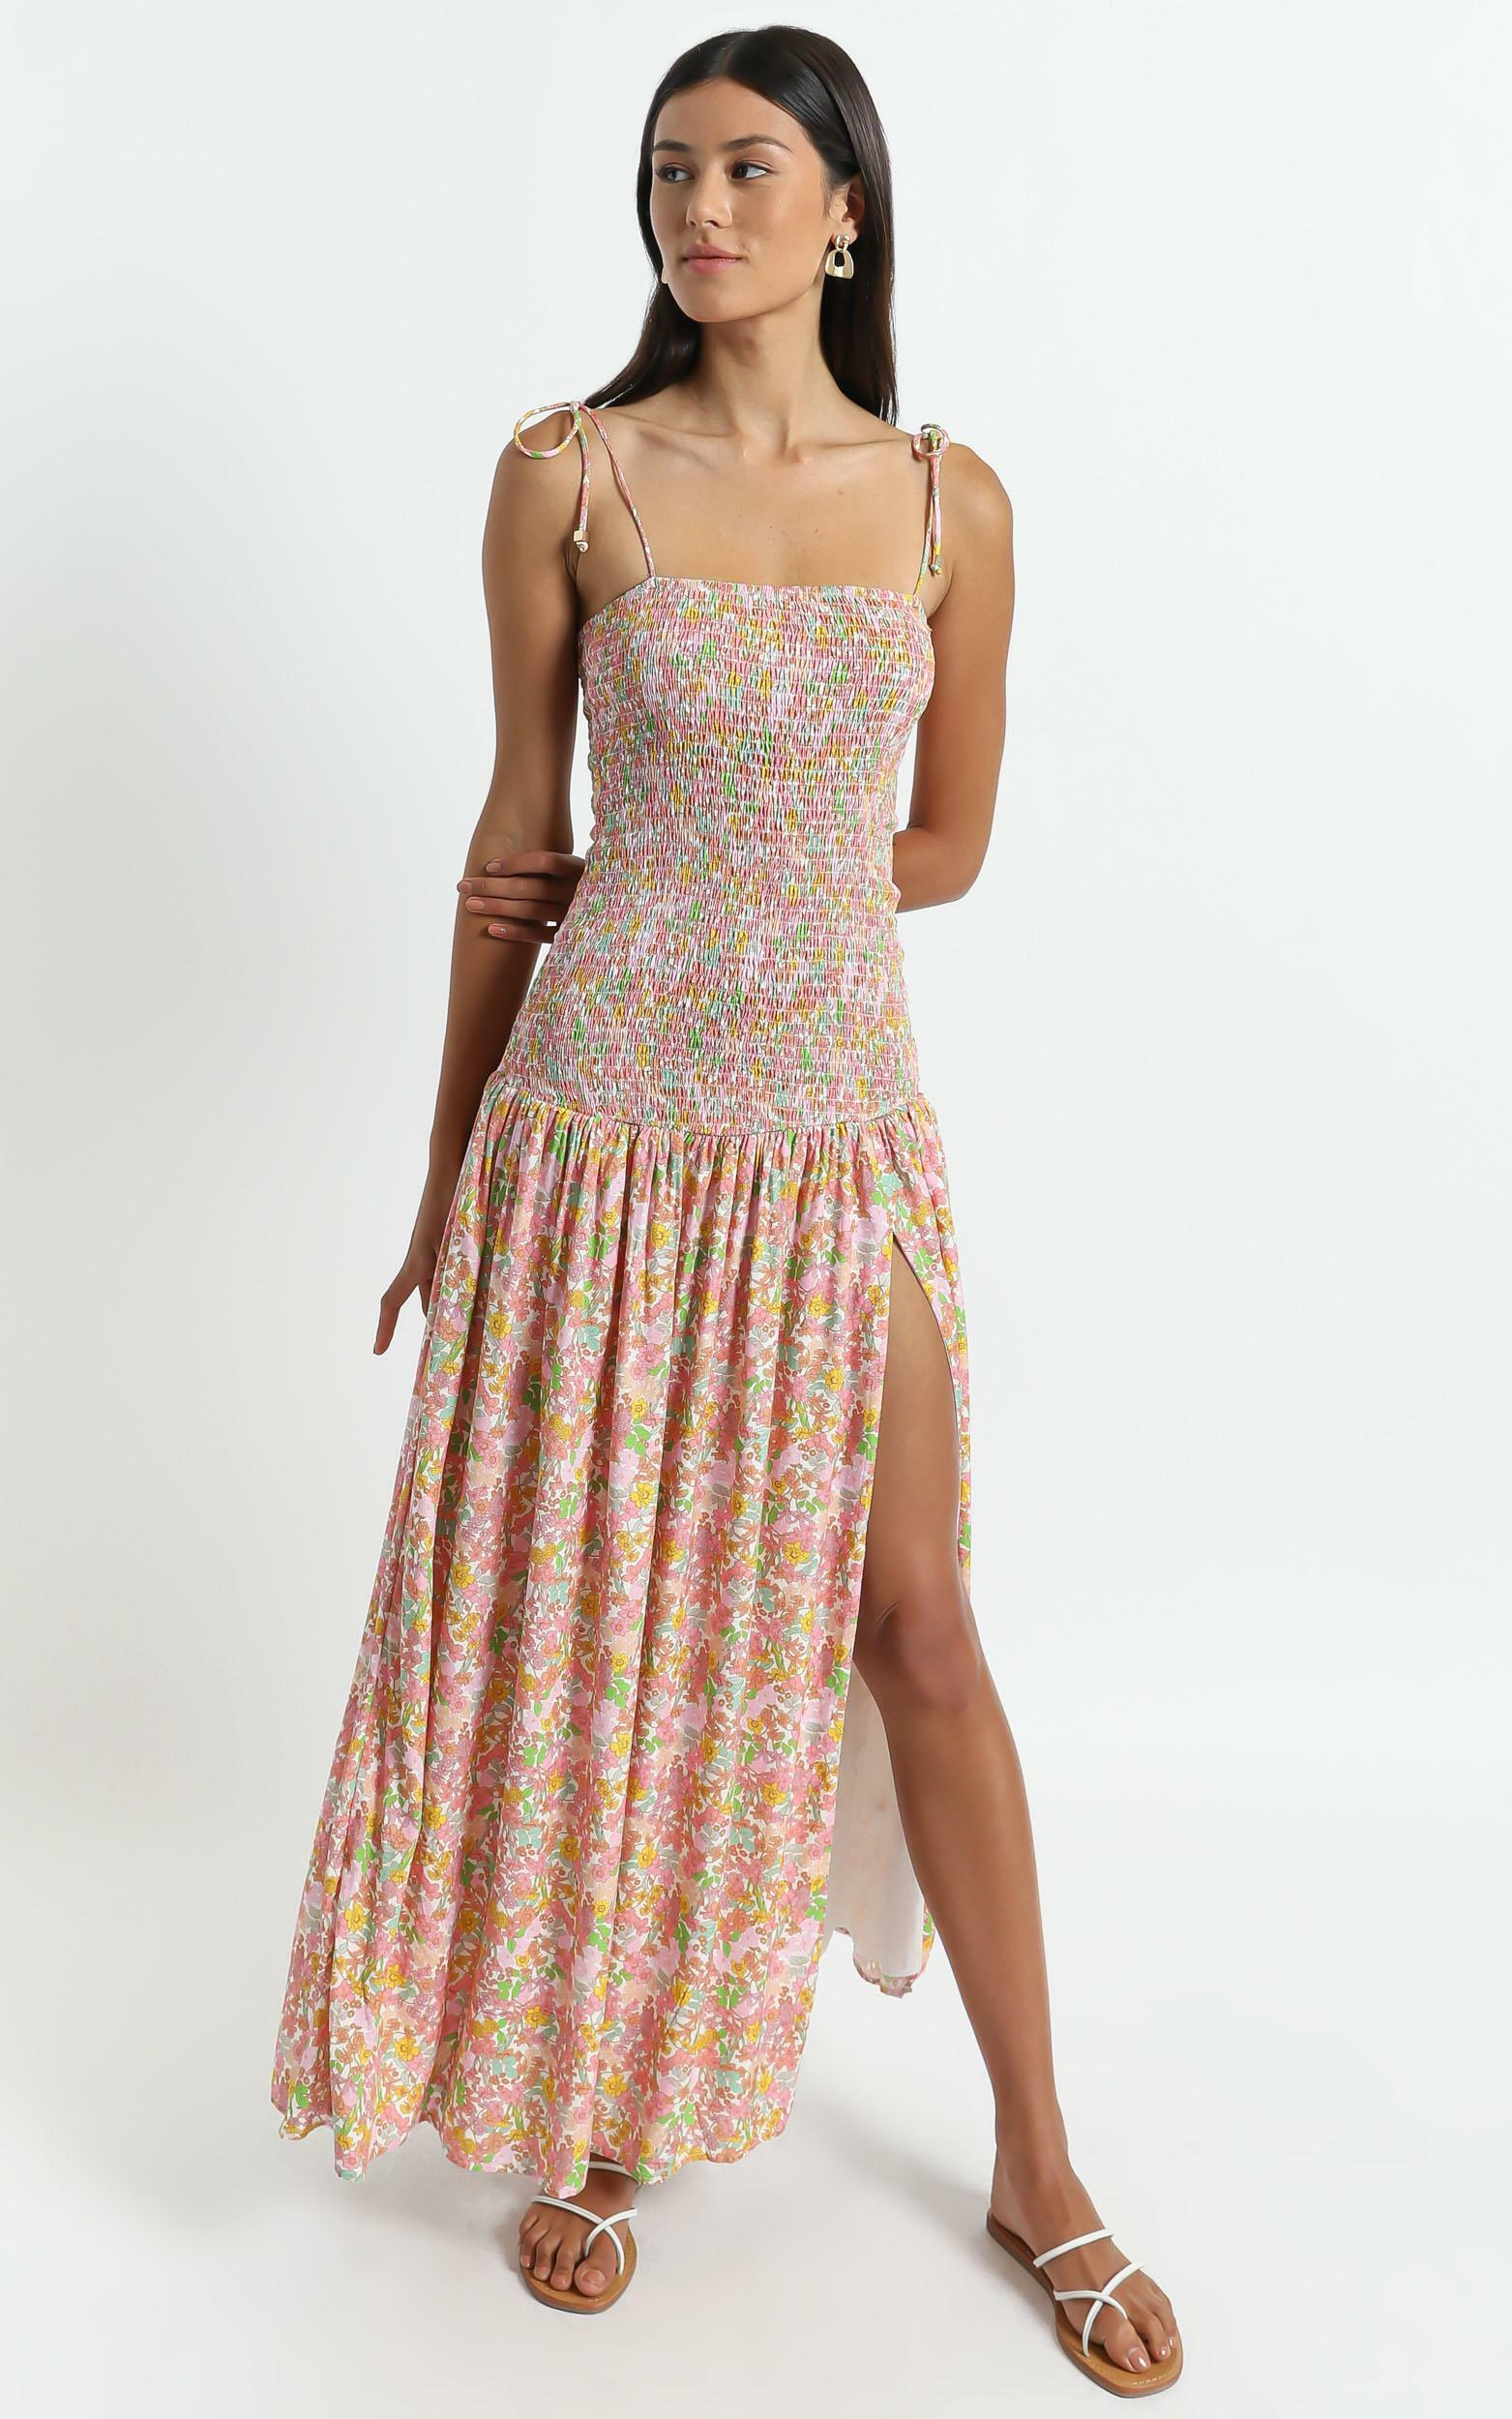 Lotta Dress in Flower Field - 6 (XS), Pink, hi-res image number null